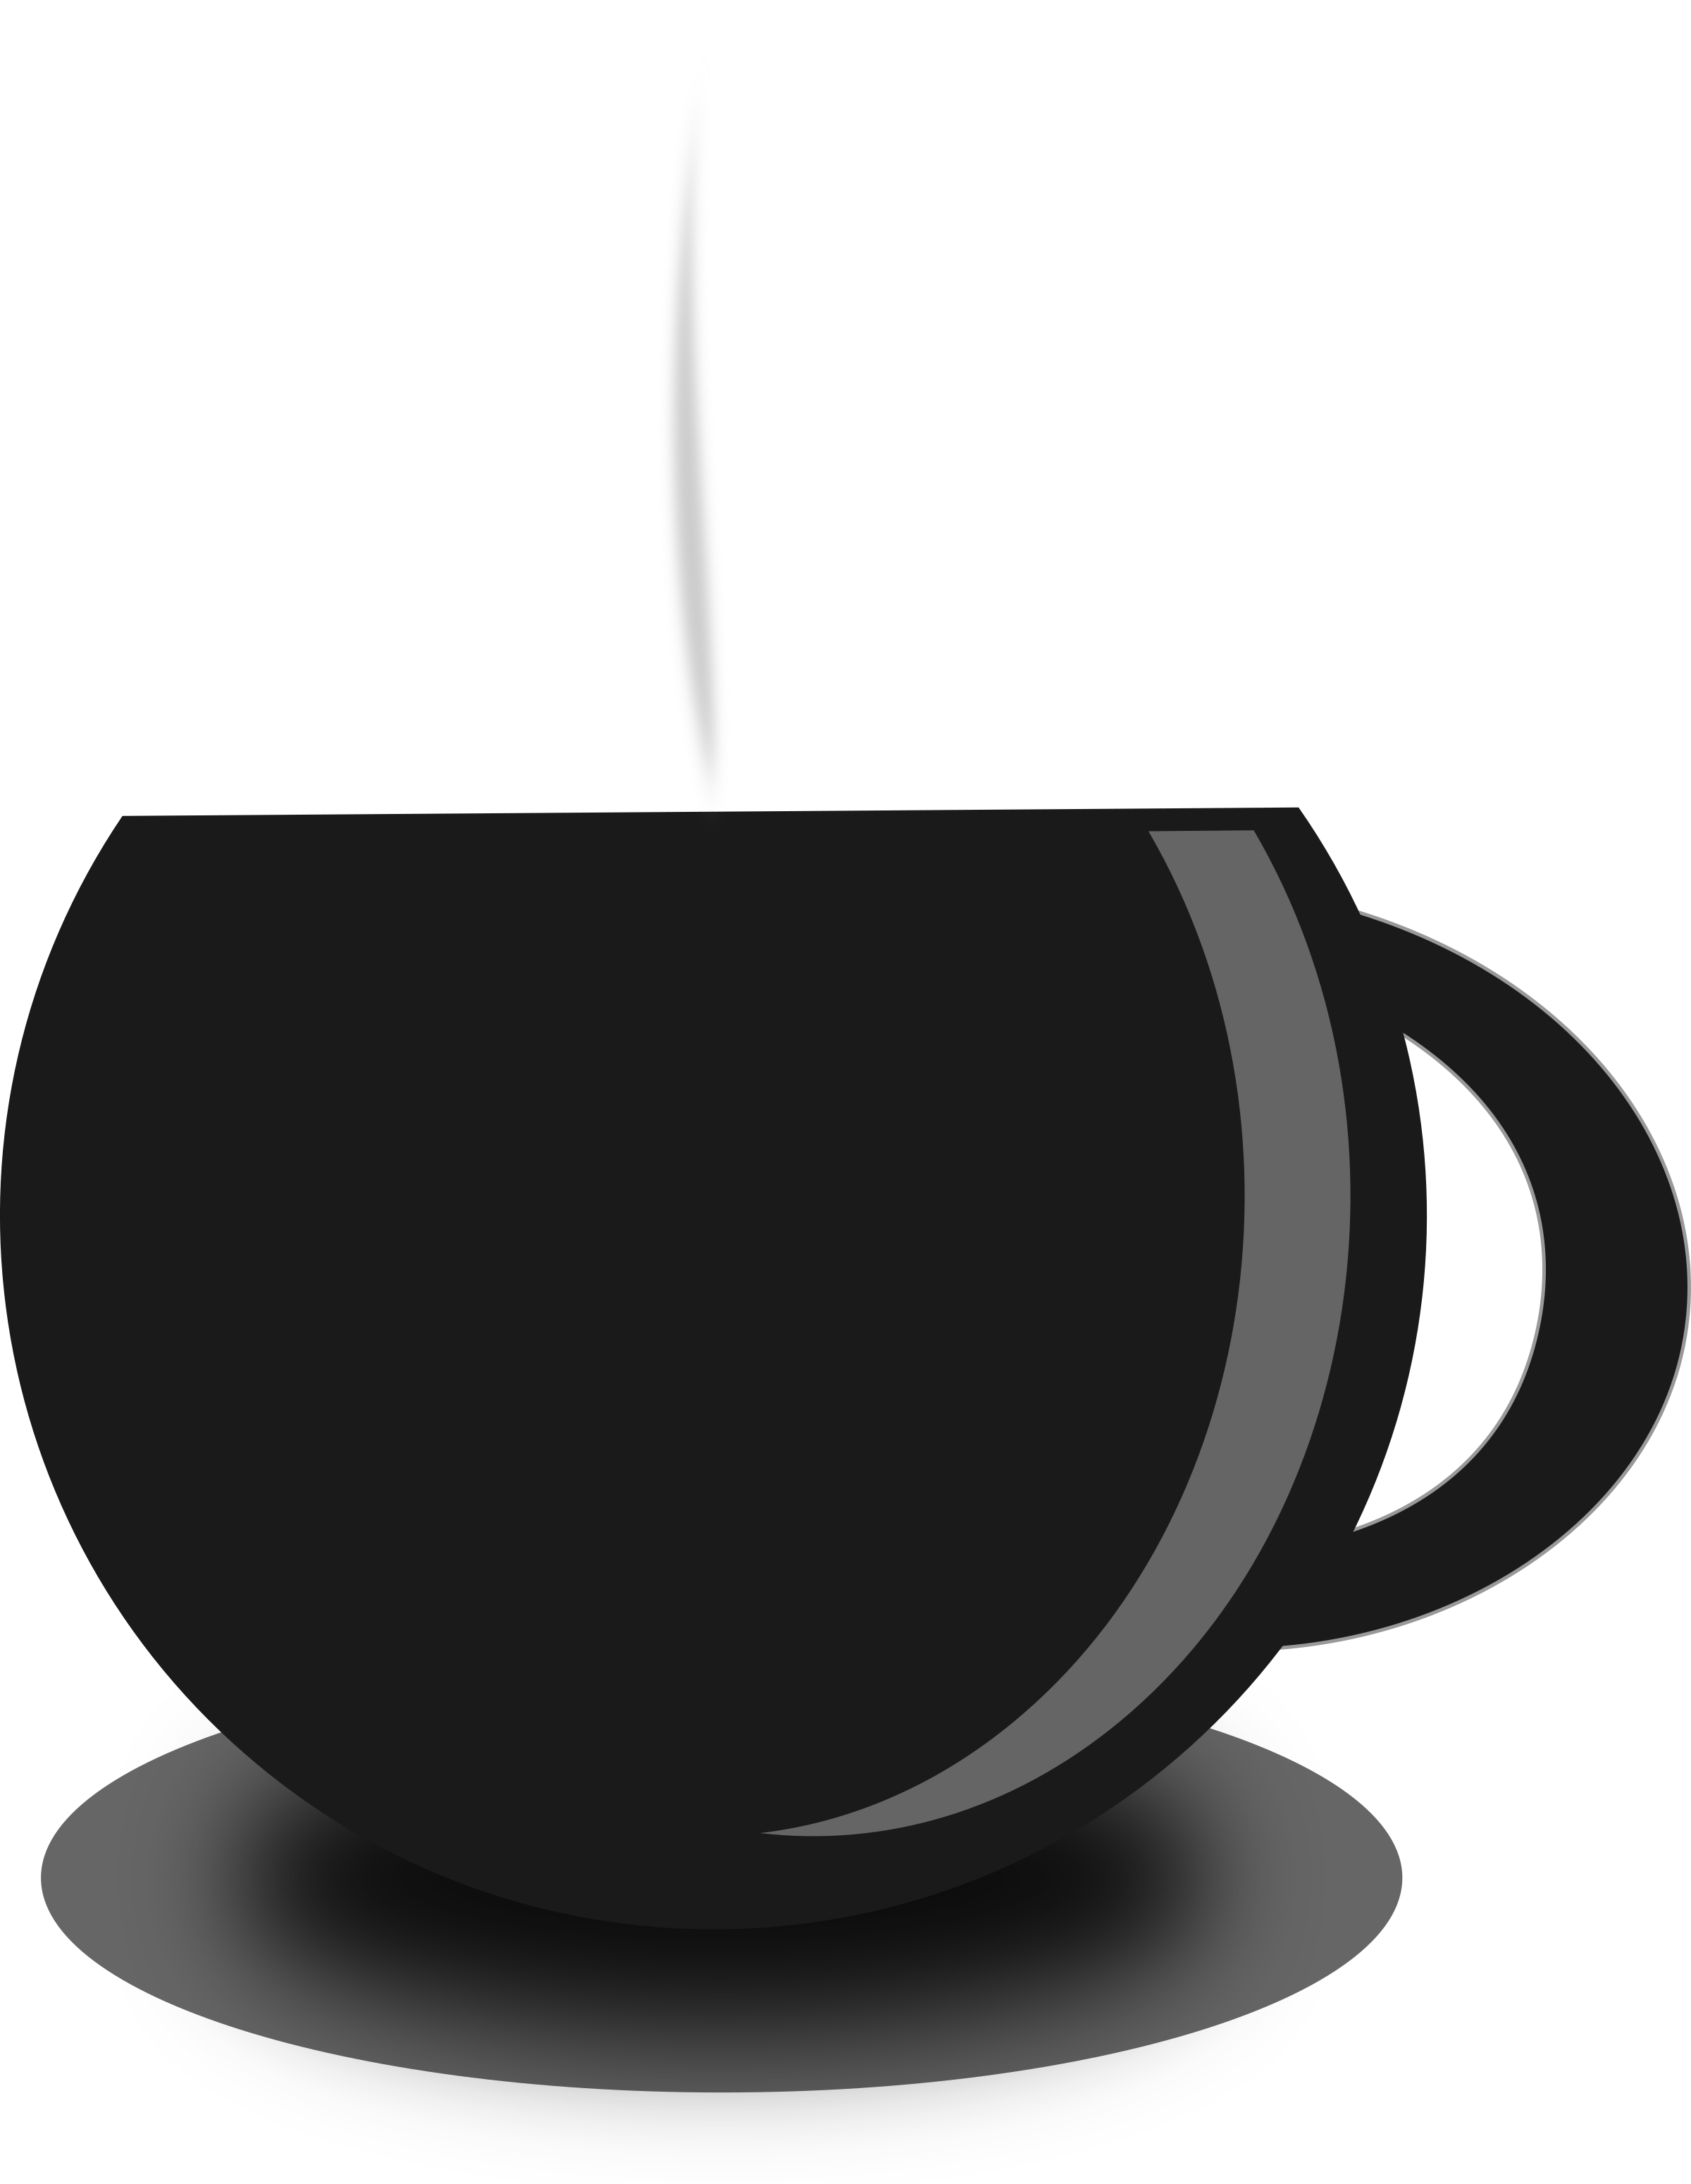 Cup silhouette at getdrawings. Drink clipart hand holding